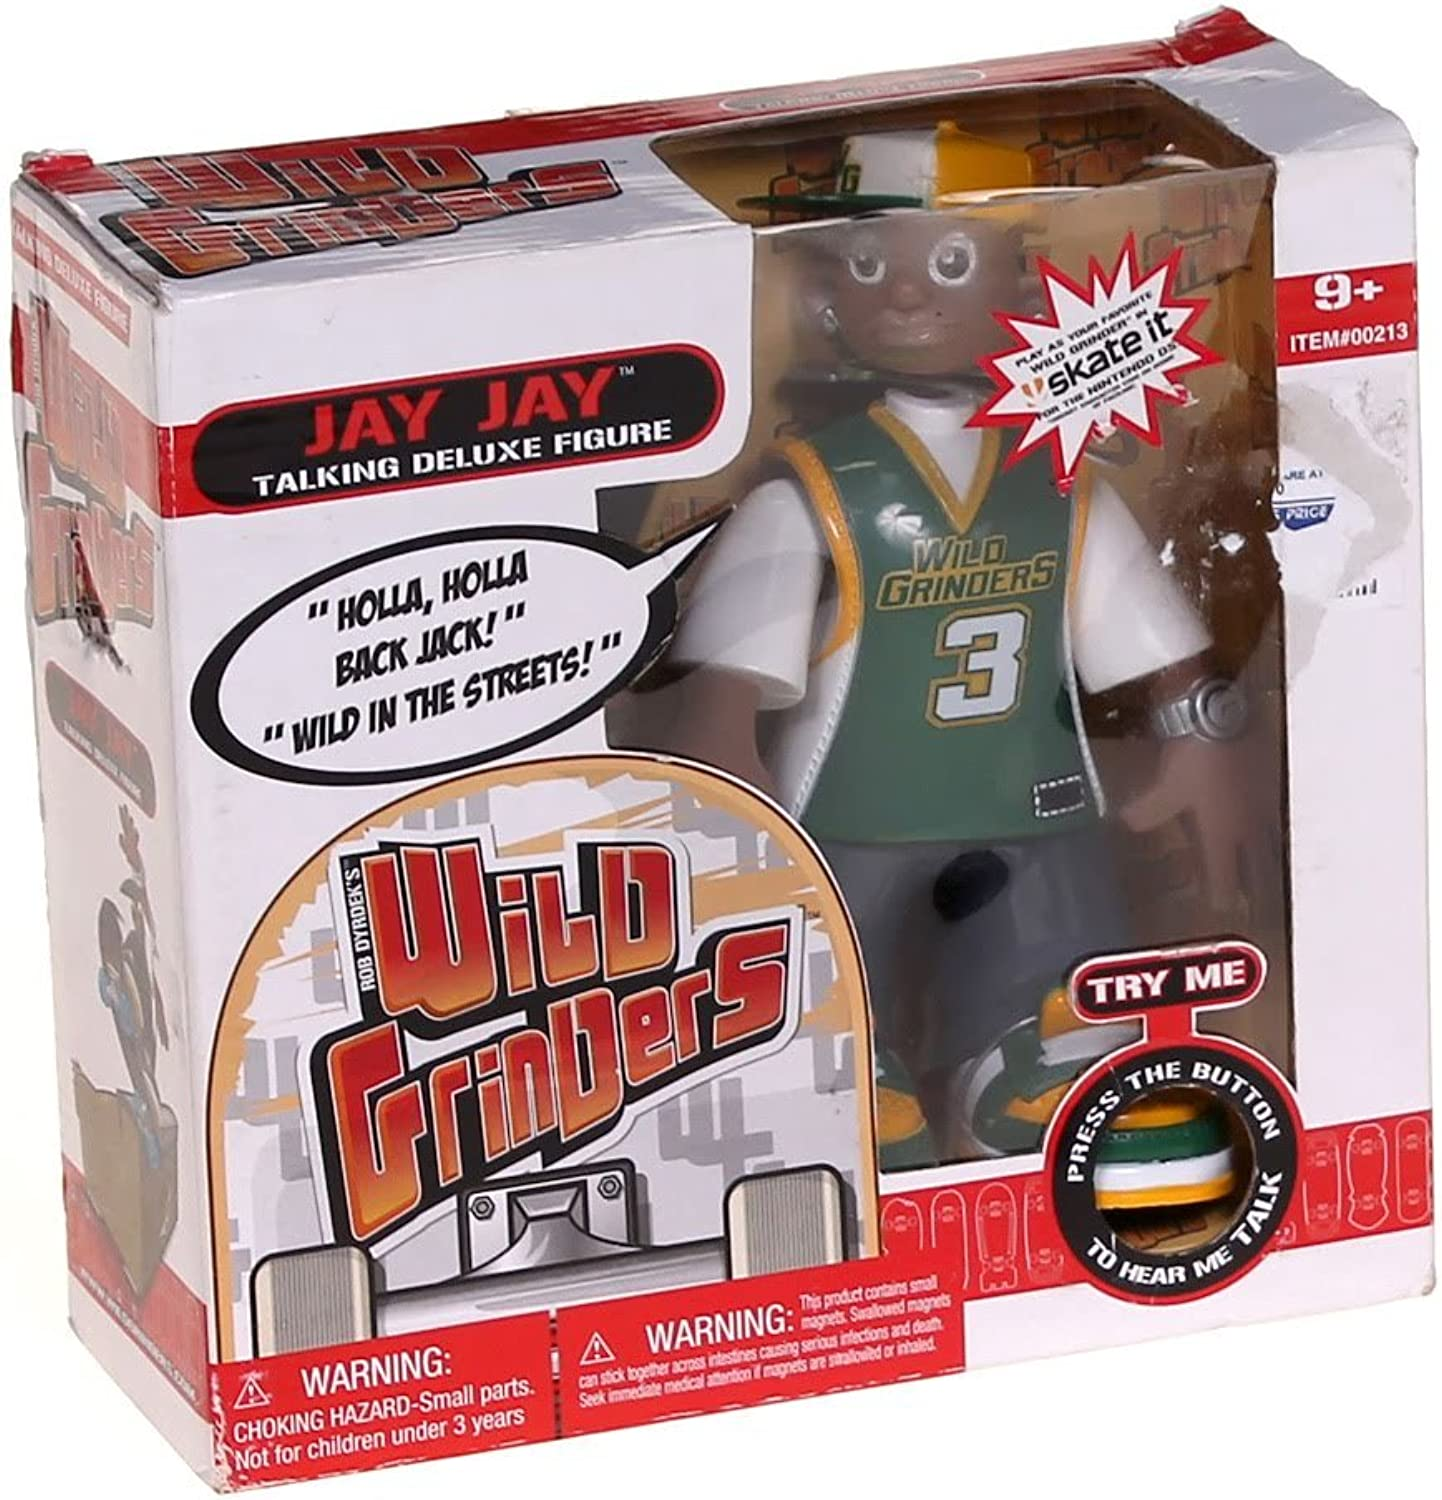 Wild Grinders Jay Jay Talking Deluxe Action Figure